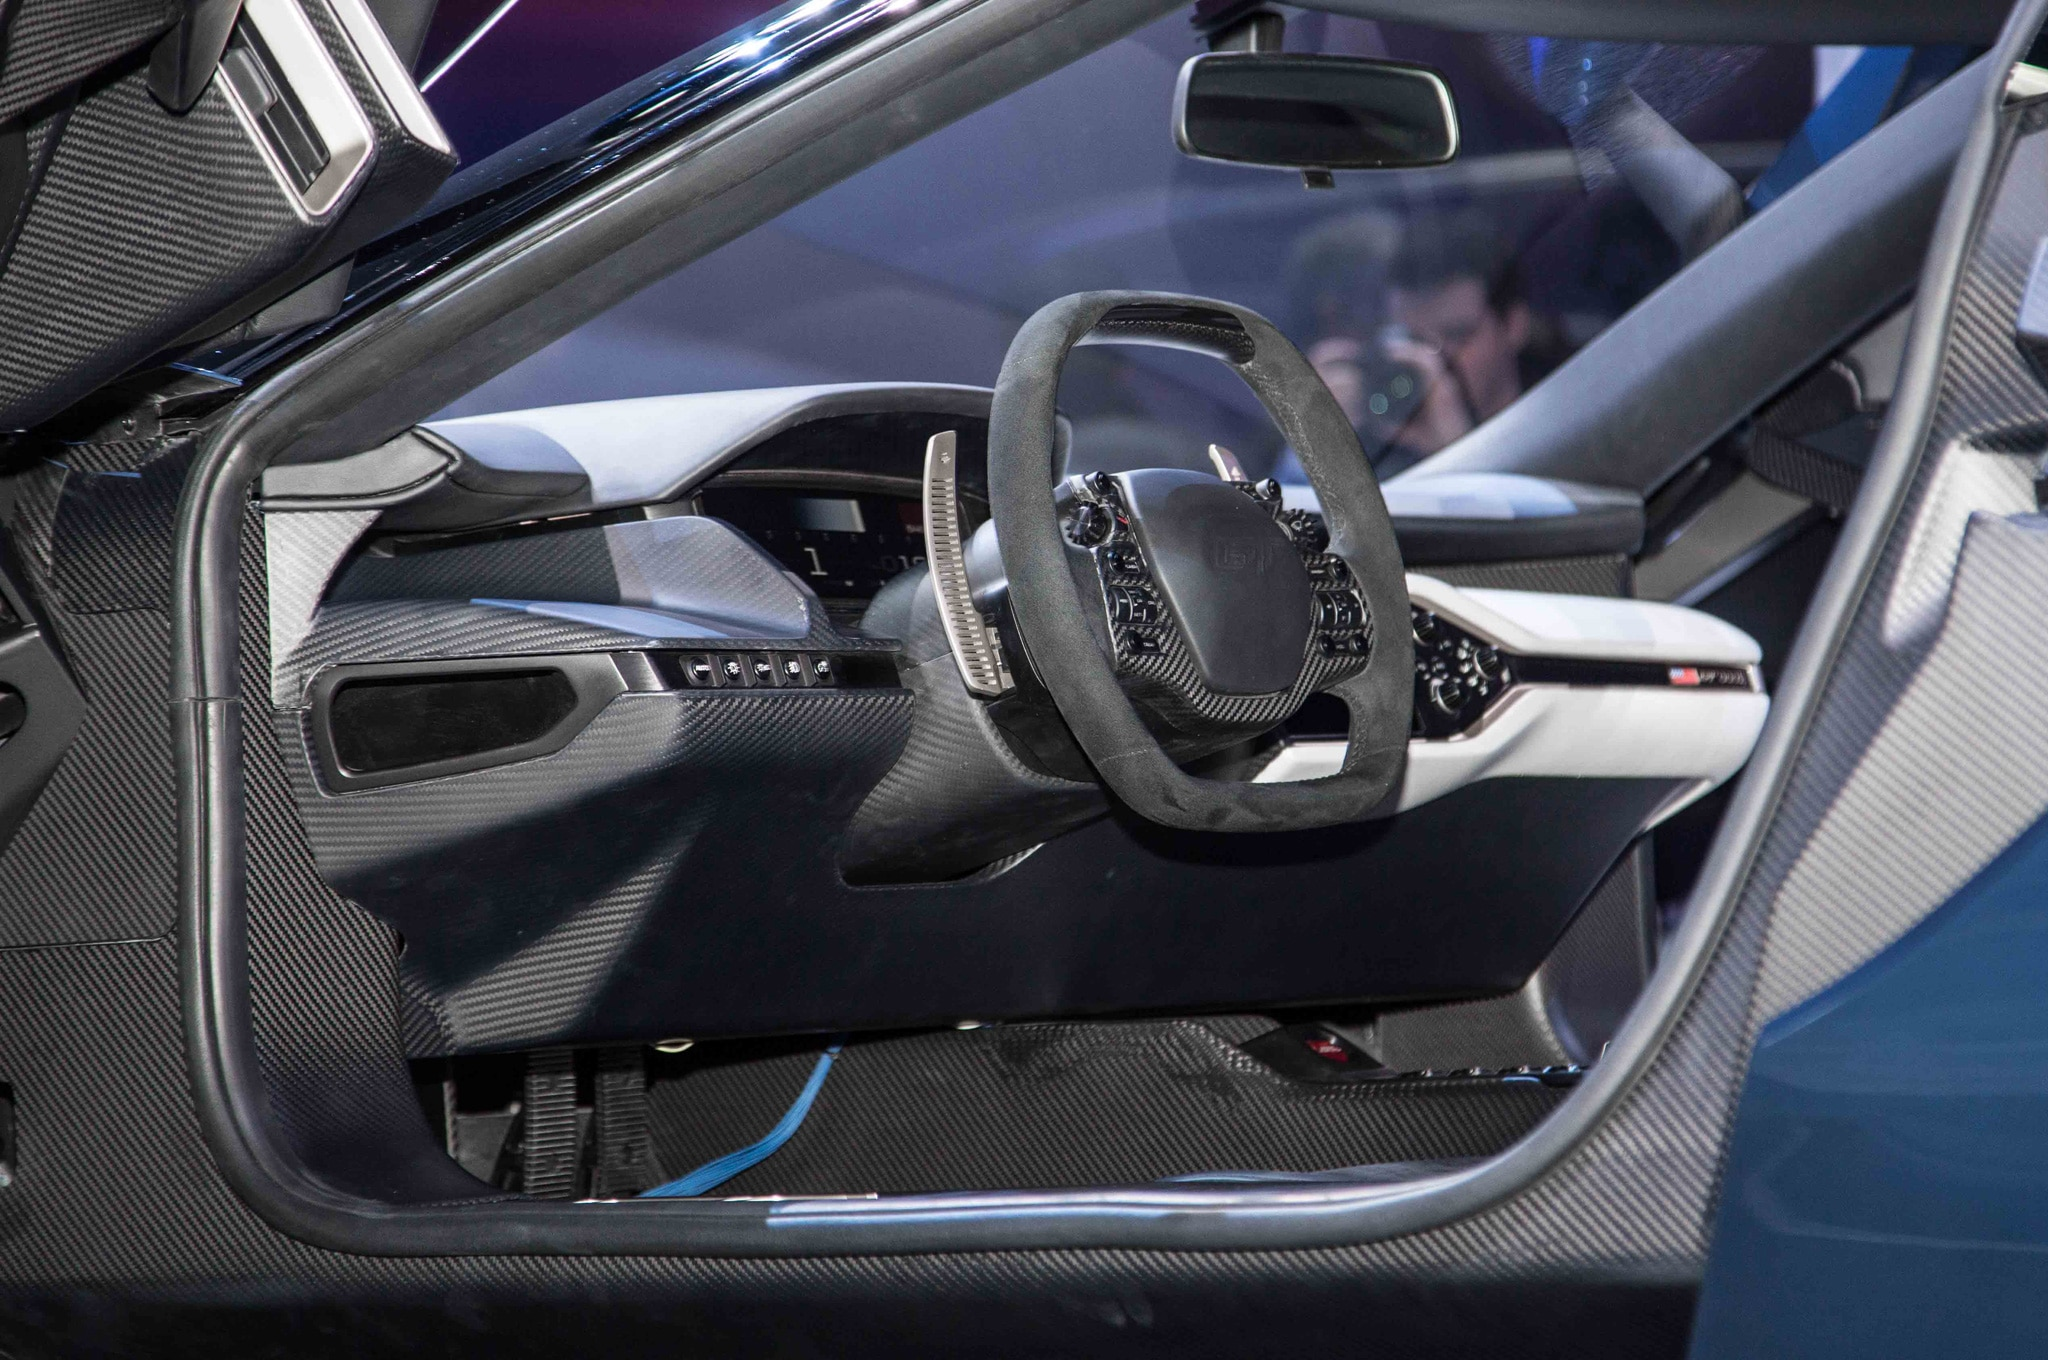 Ford gt at 2015 detroit auto show interior view